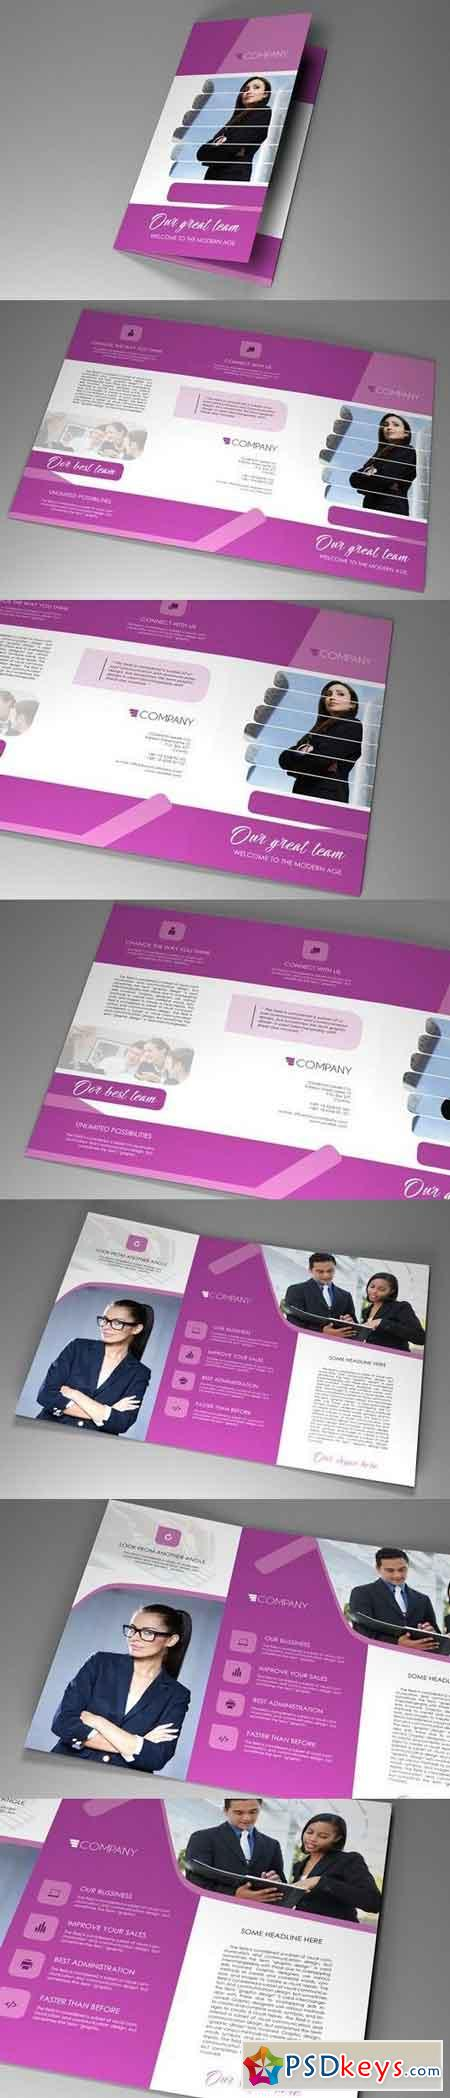 Trifold Indesign Brochure Fancy vol 3 1213276